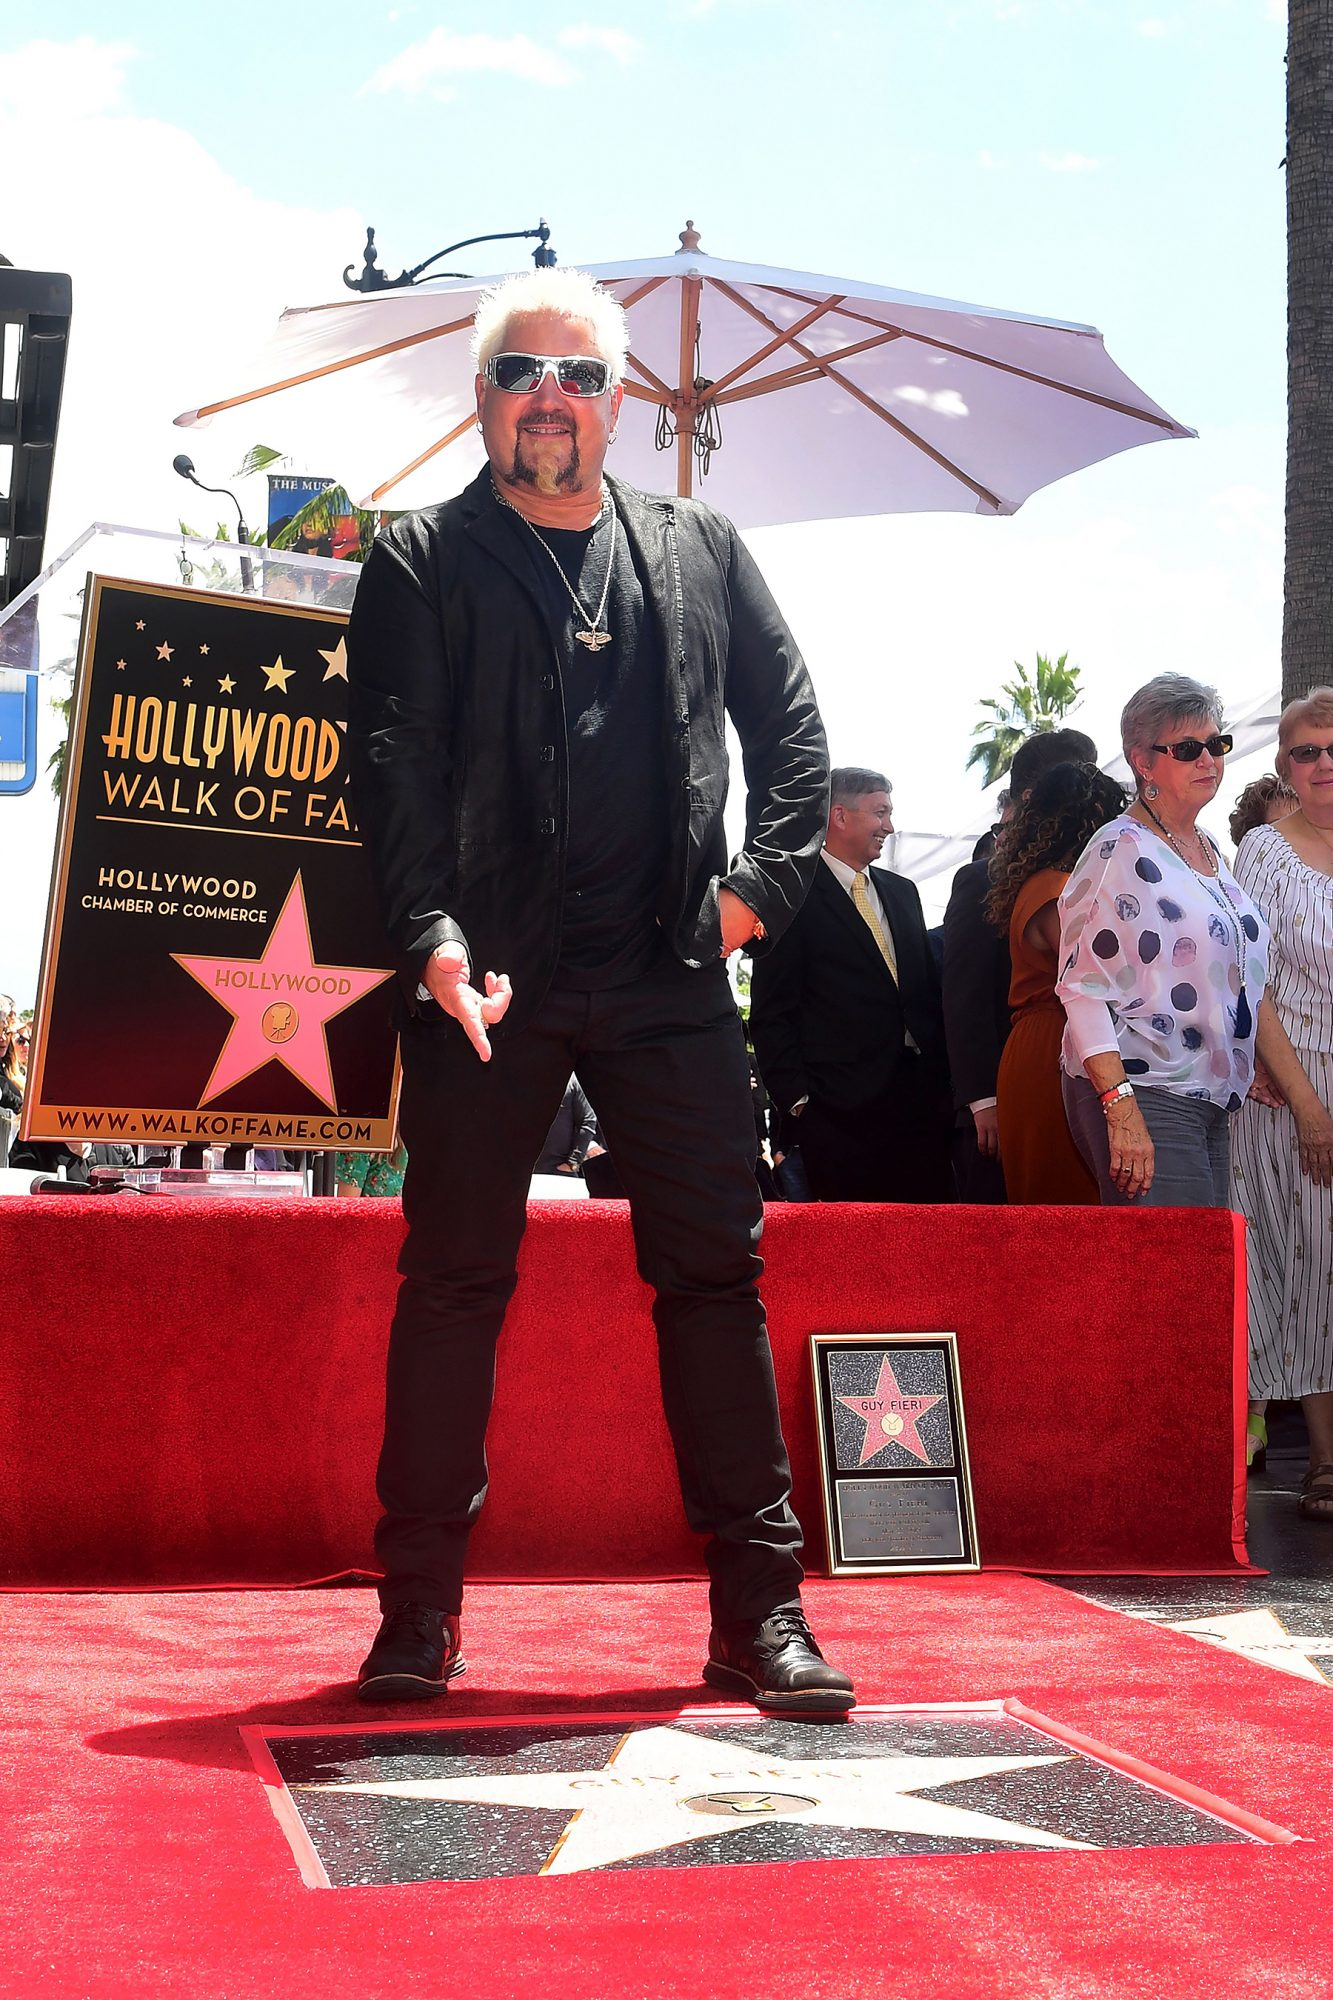 Guy Fieri walk of fame